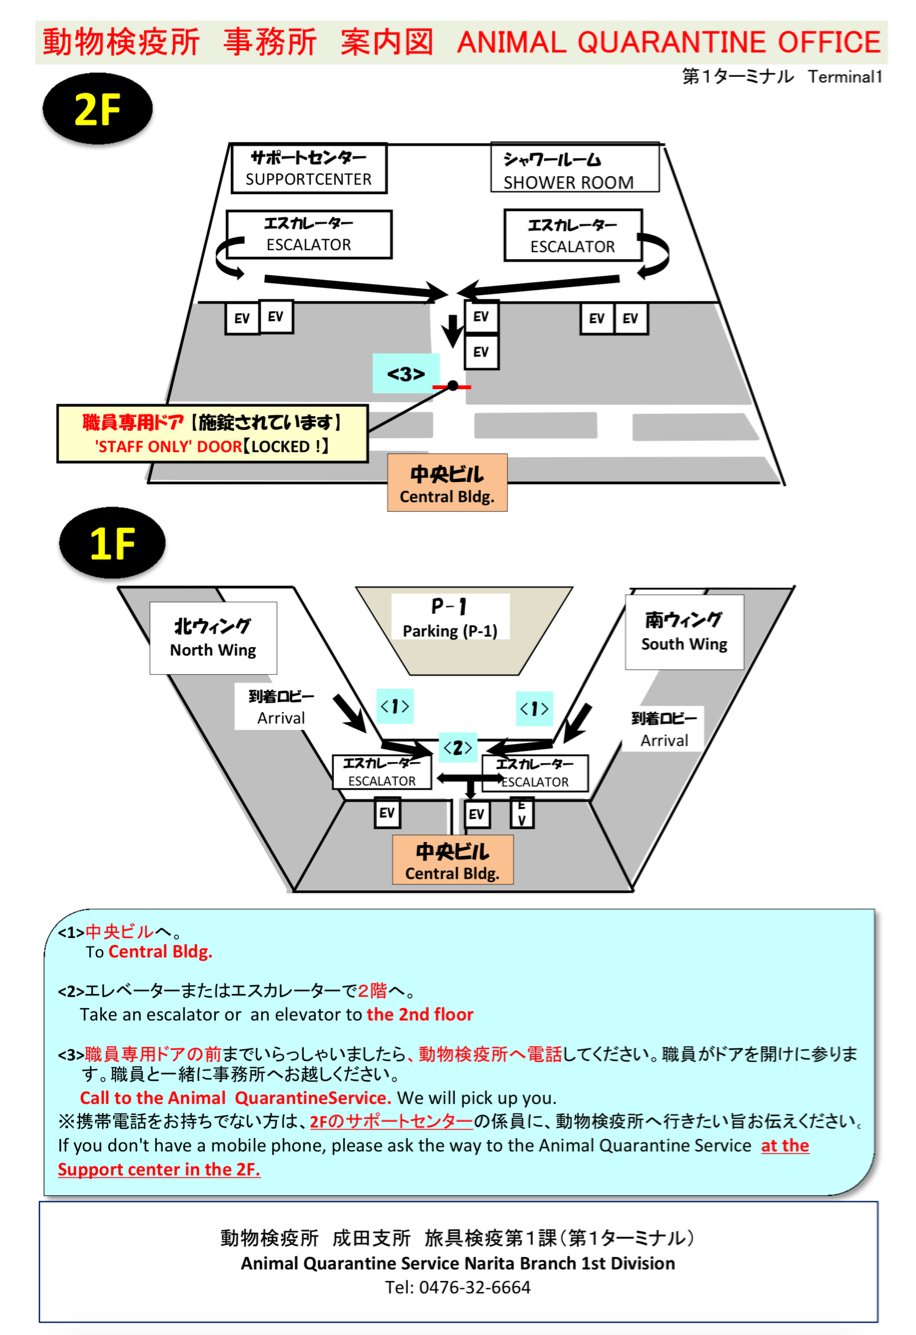 Map to Narita Airport (Terminal 1) Animal Quarantine Office  (click to enlarge)